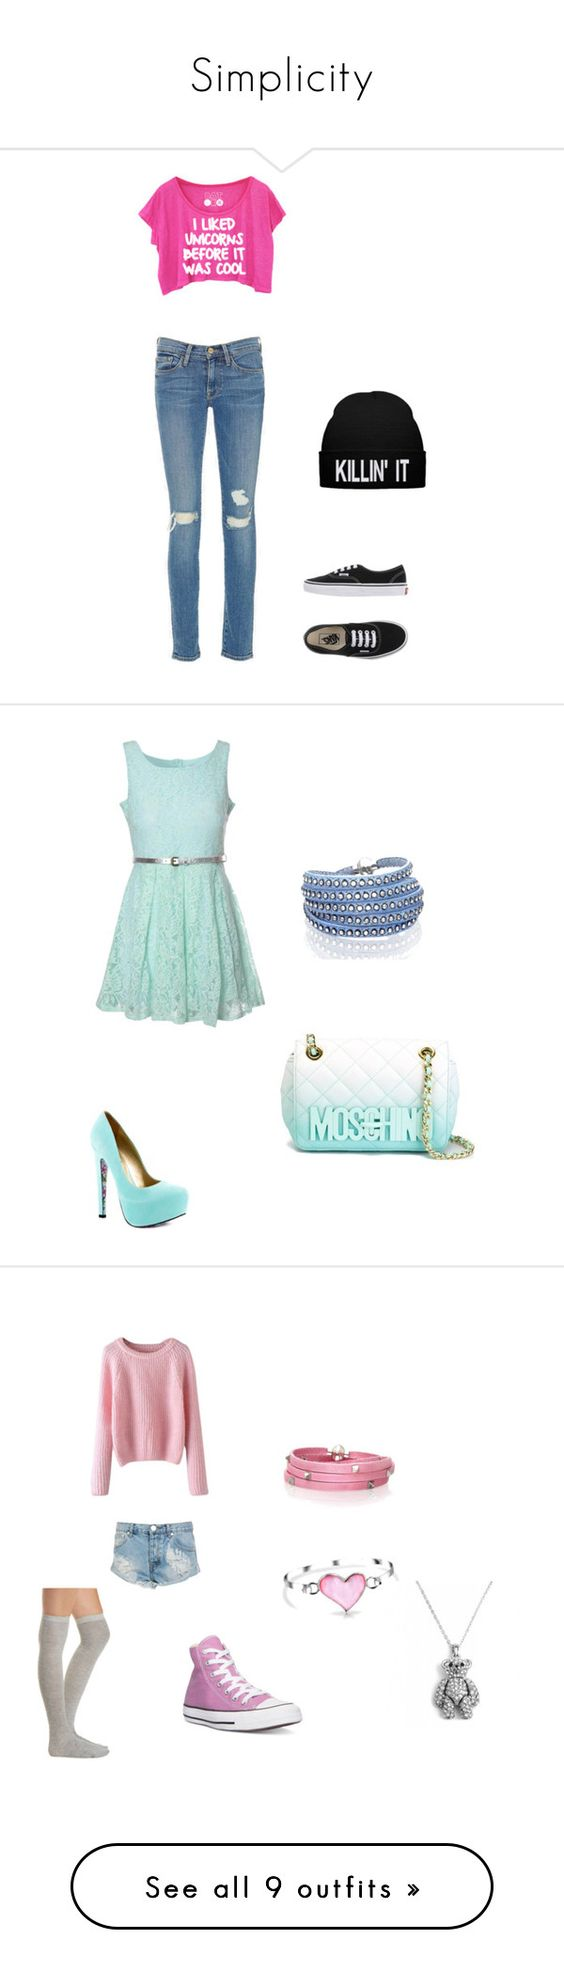 """""""Simplicity"""" by kaetheturtle on Polyvore featuring Frame Denim, Vans, women's clothing, women's fashion, women, female, woman, misses, juniors and Glamorous"""